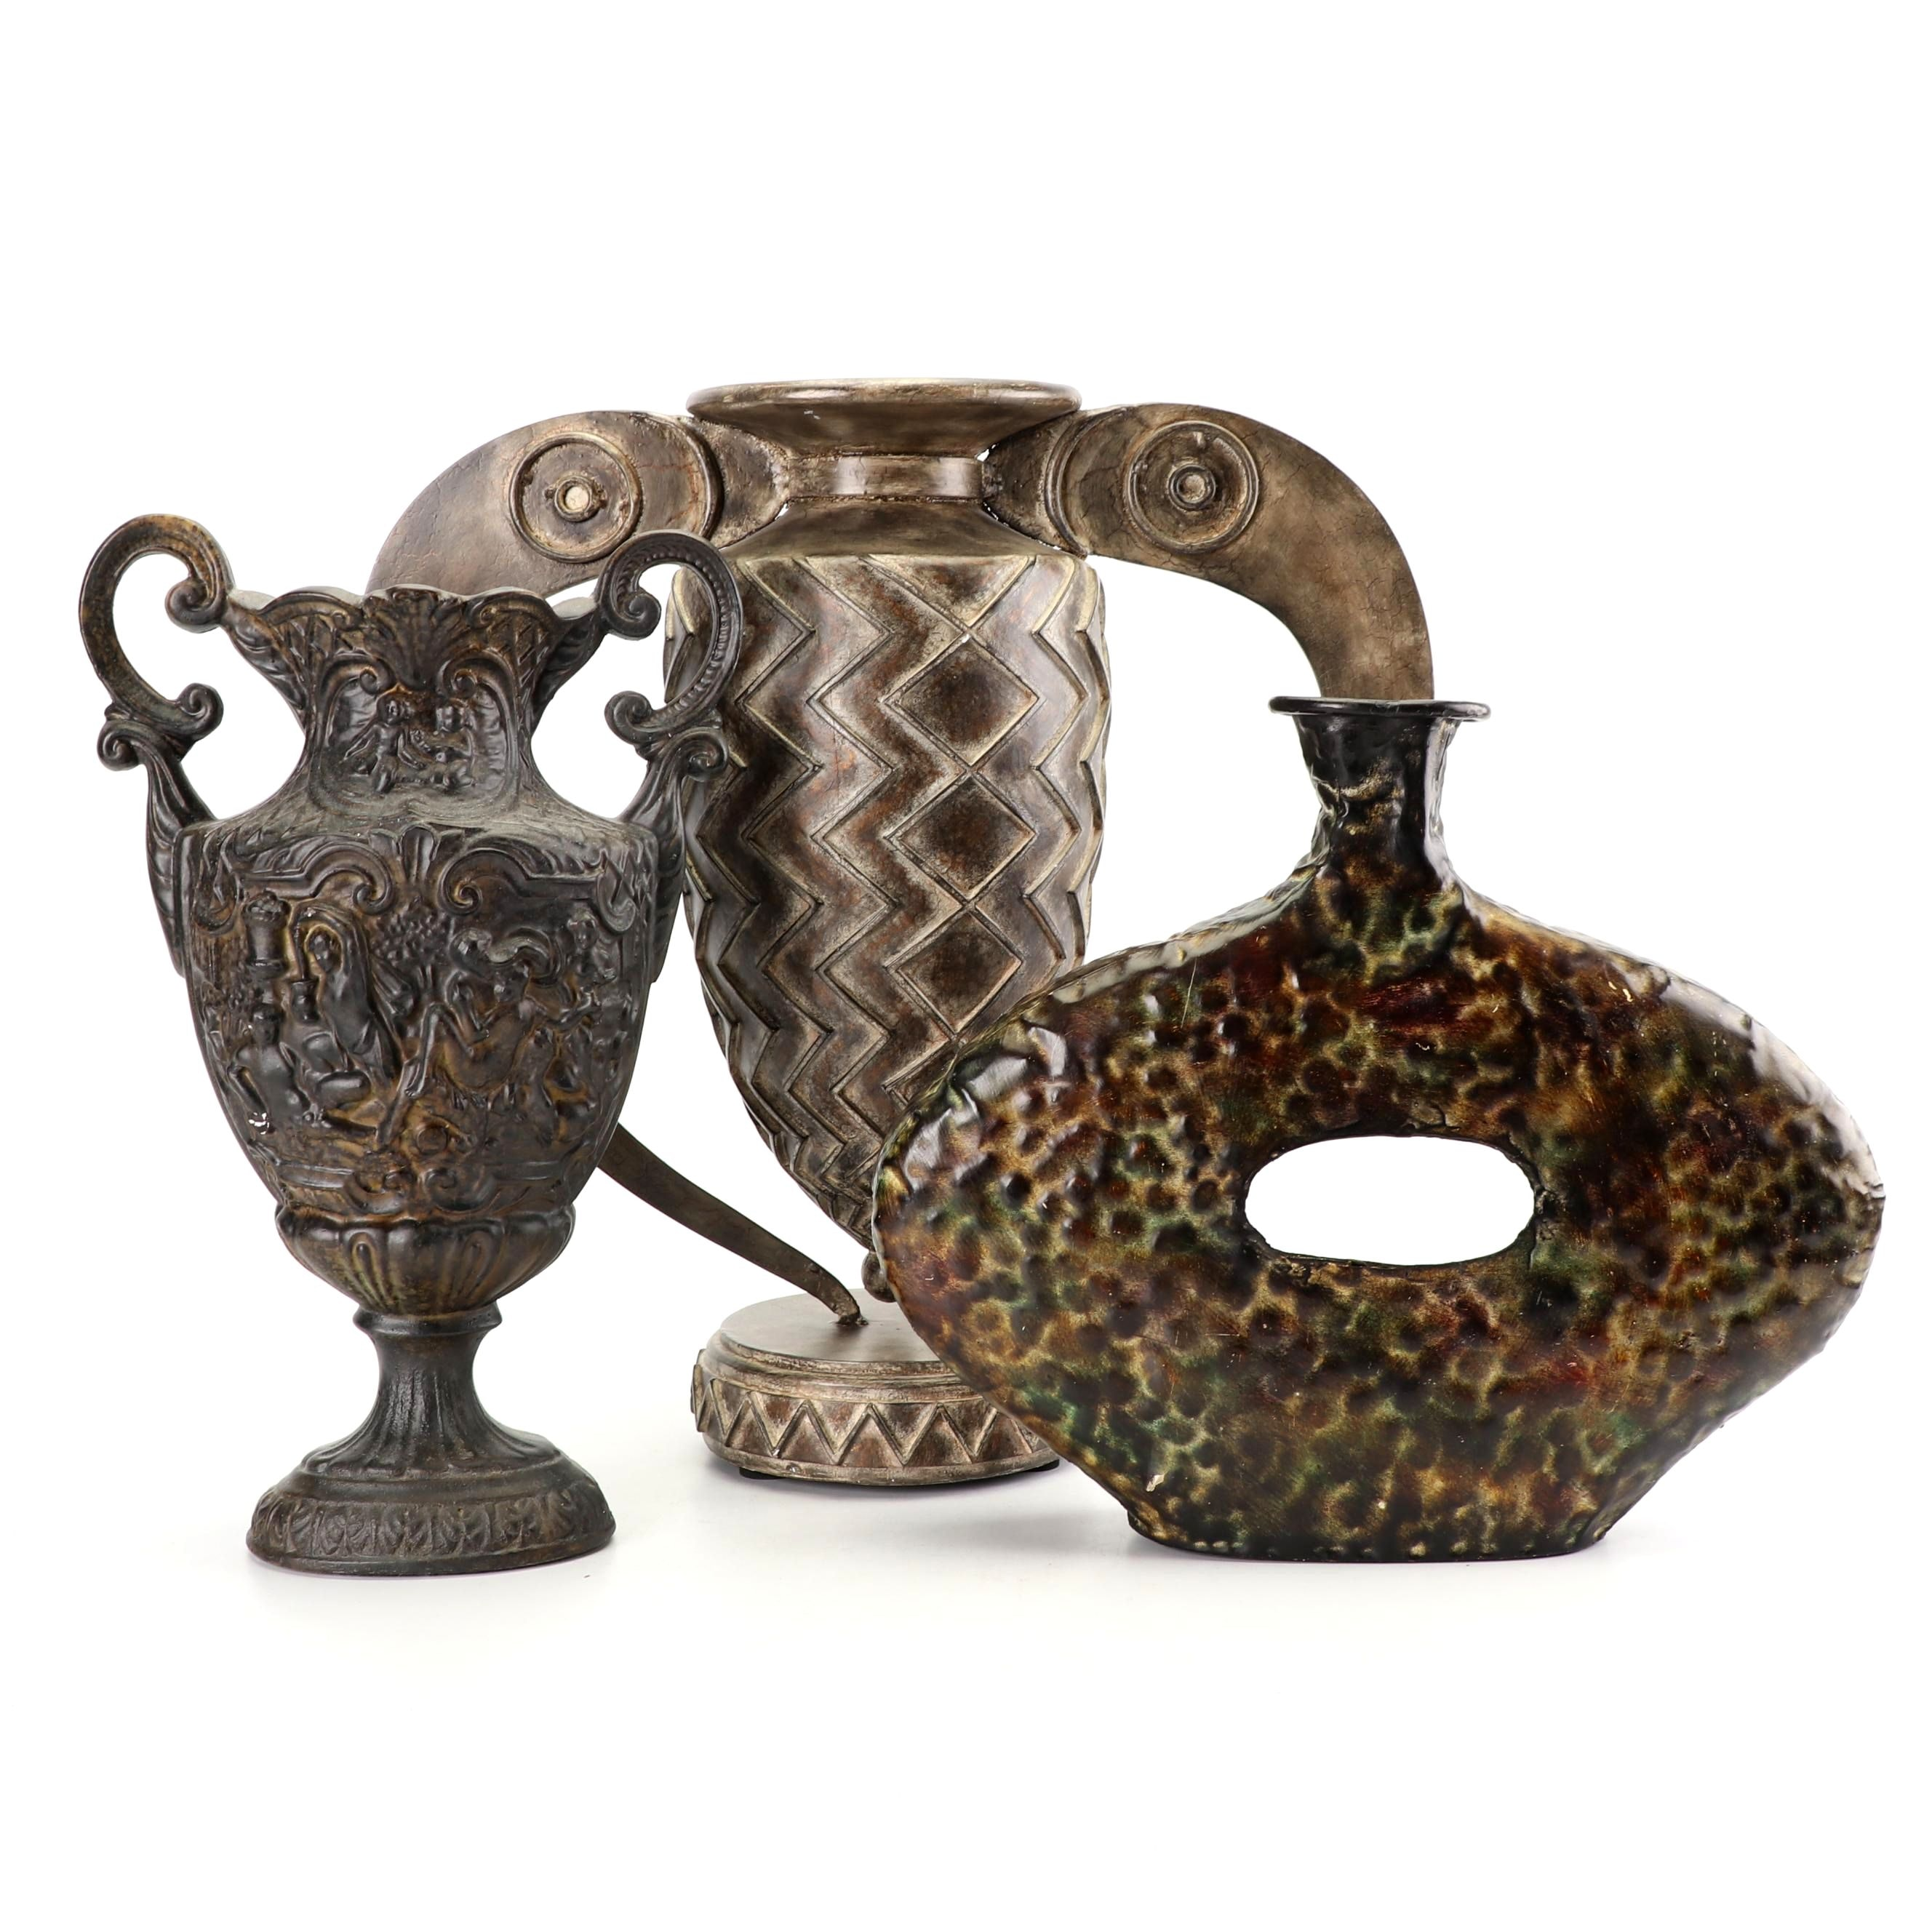 Decorative Metal and Resin Vases